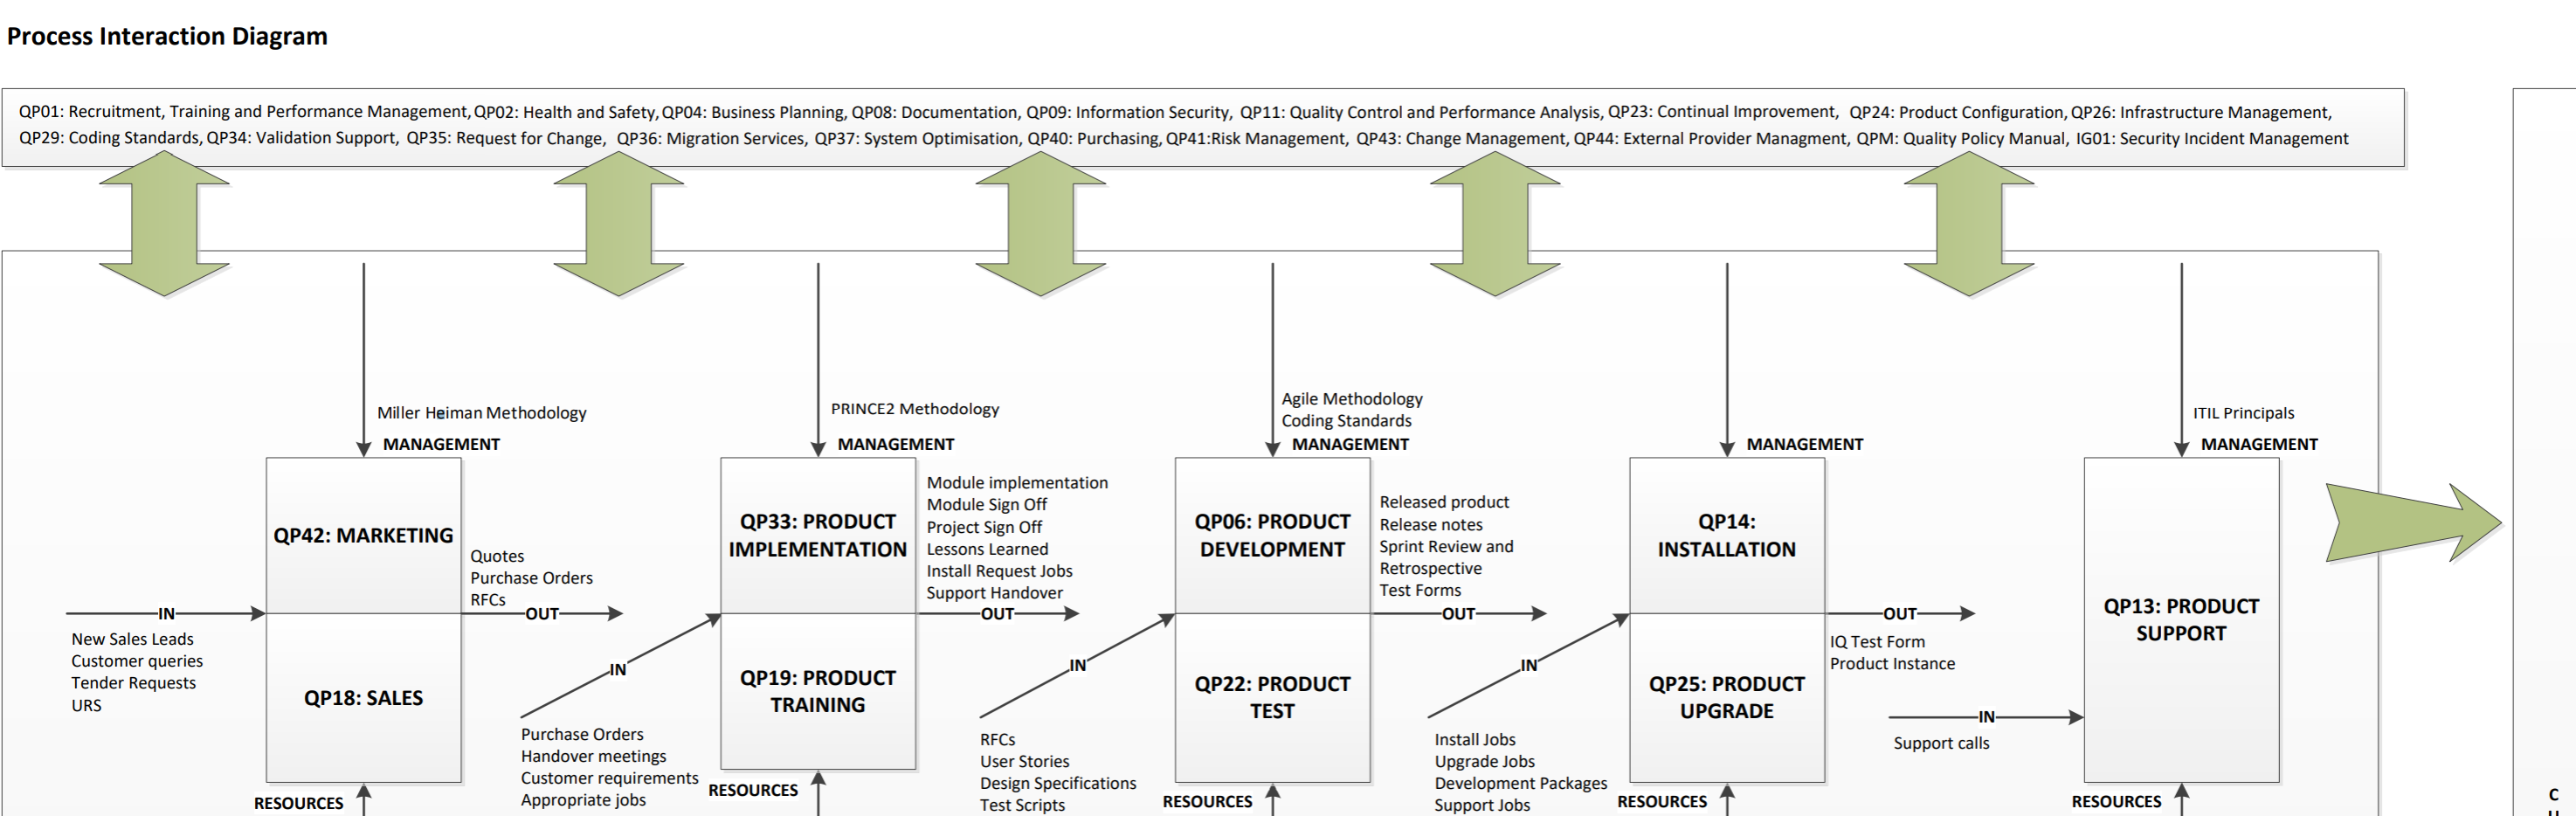 Qualsys process interaction map